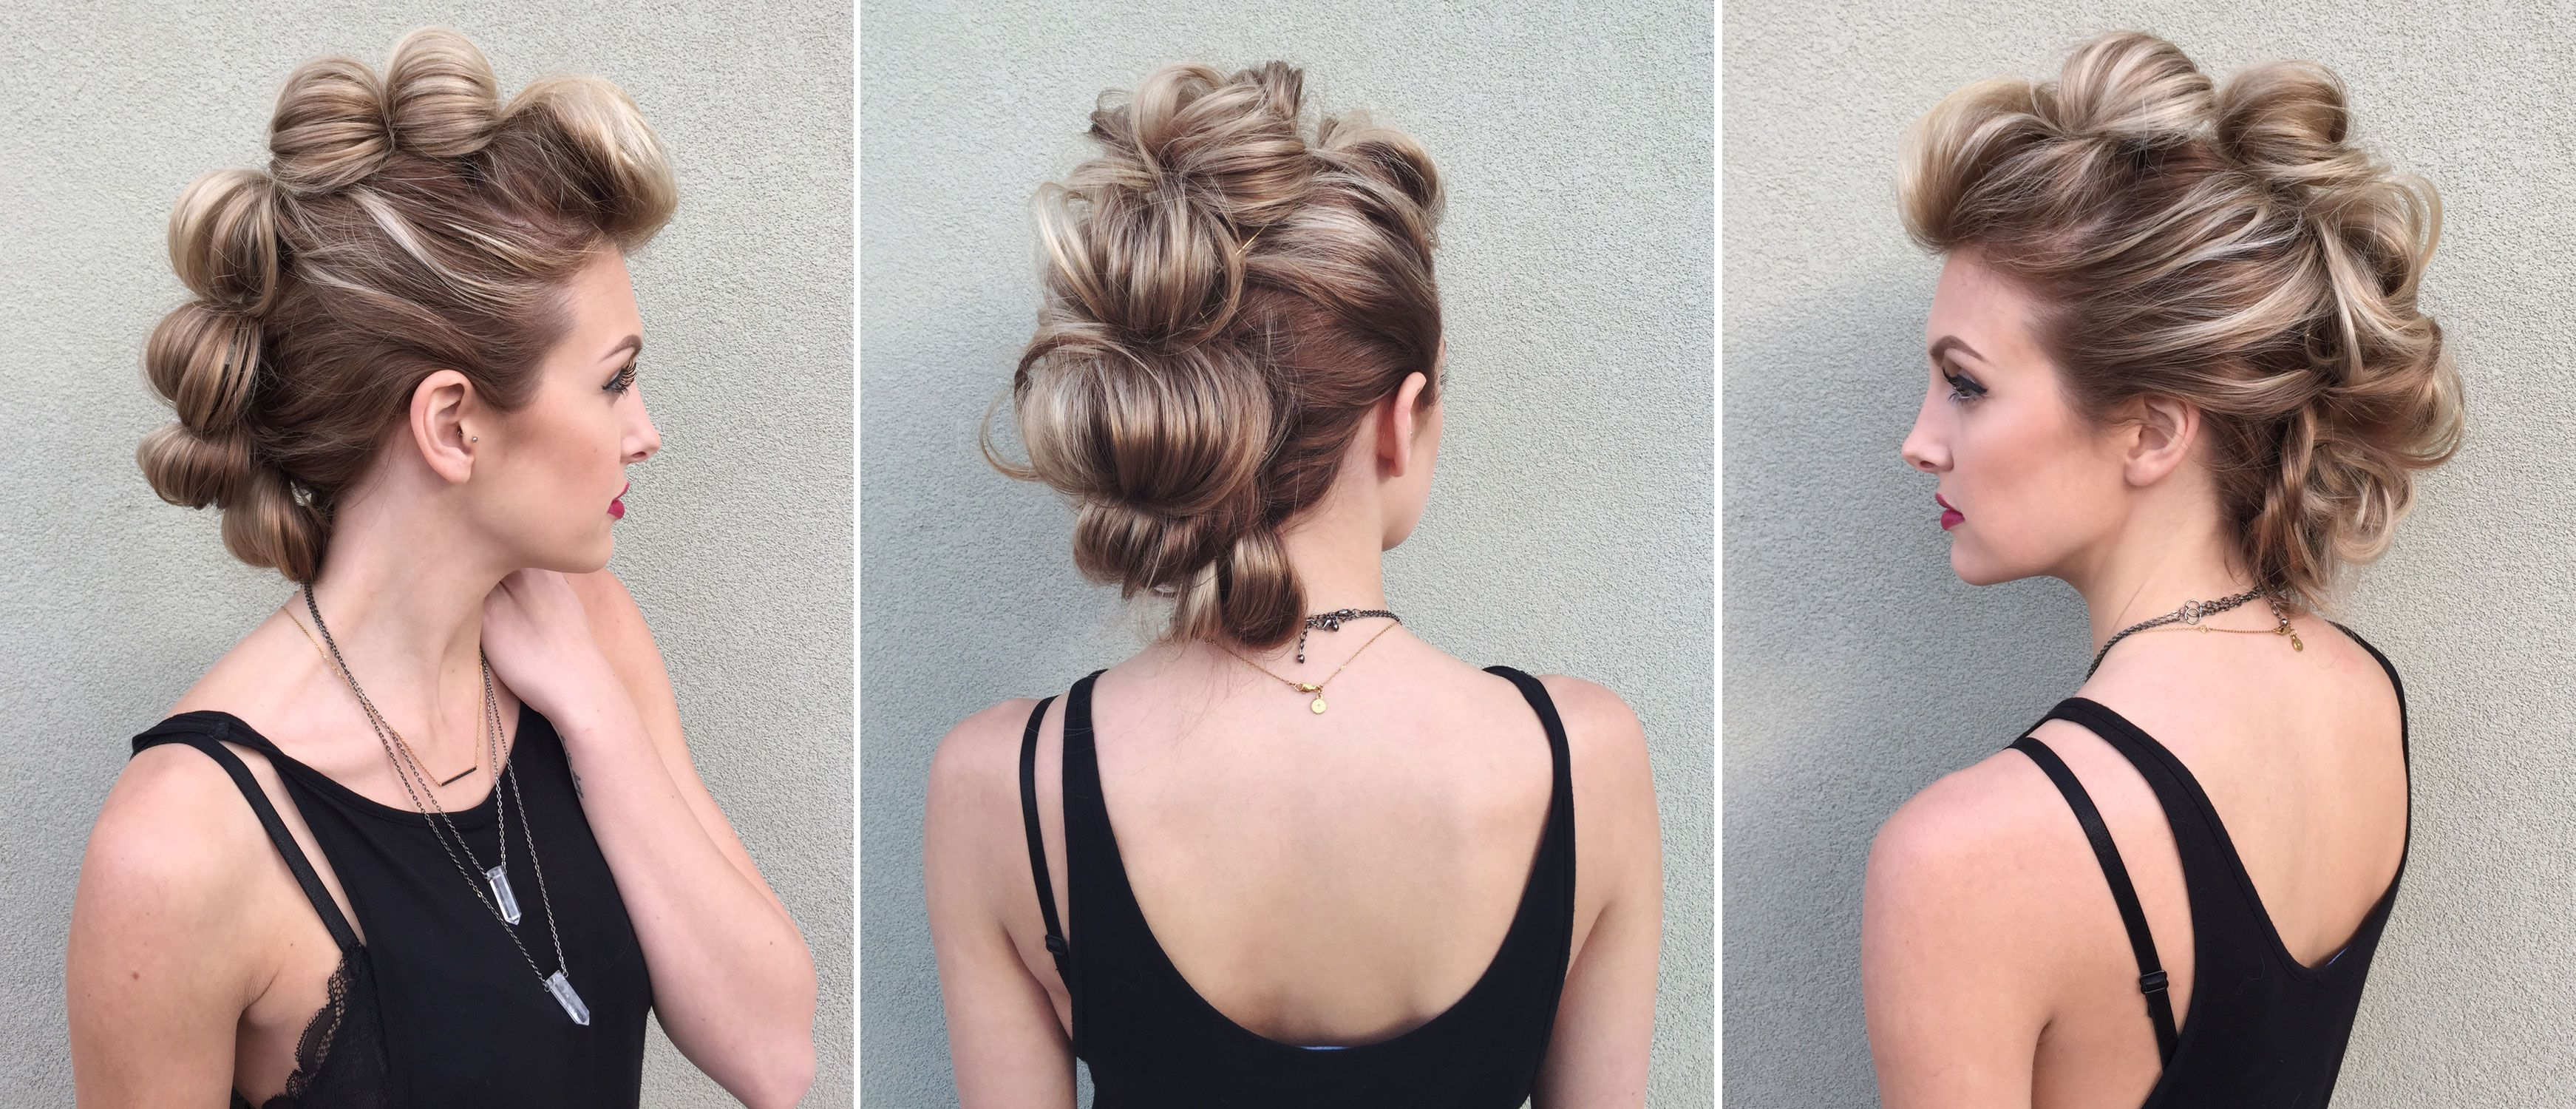 Howto topsy tail looped faux hawk kids braided